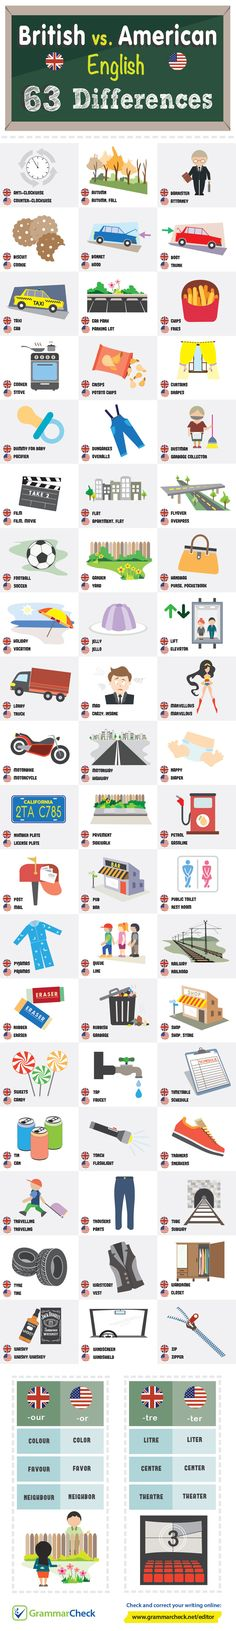 British vs. American English: 63 Differences (Infographic)